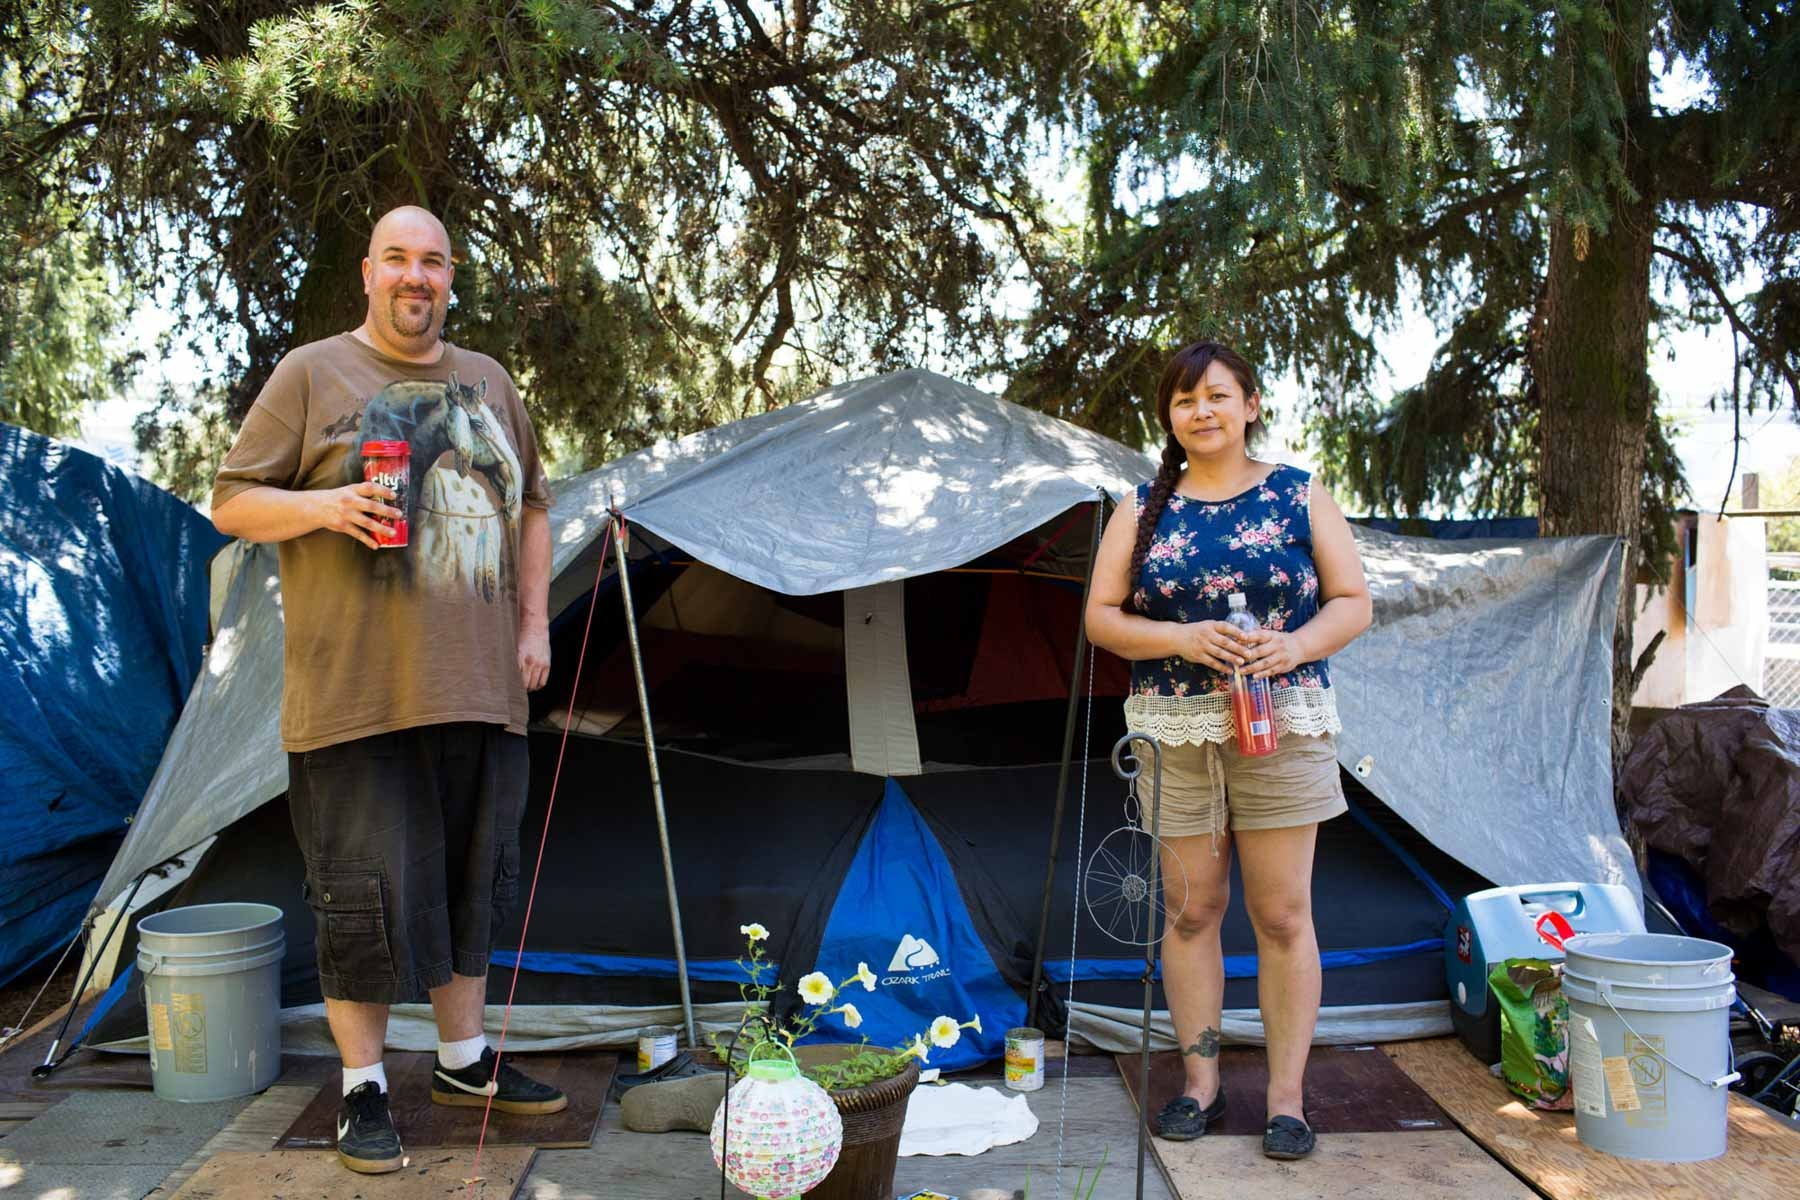 Brian and Melissa, Hazelnut Grove, Portland 'Homeless couples tell their love stories'  for the Guardian